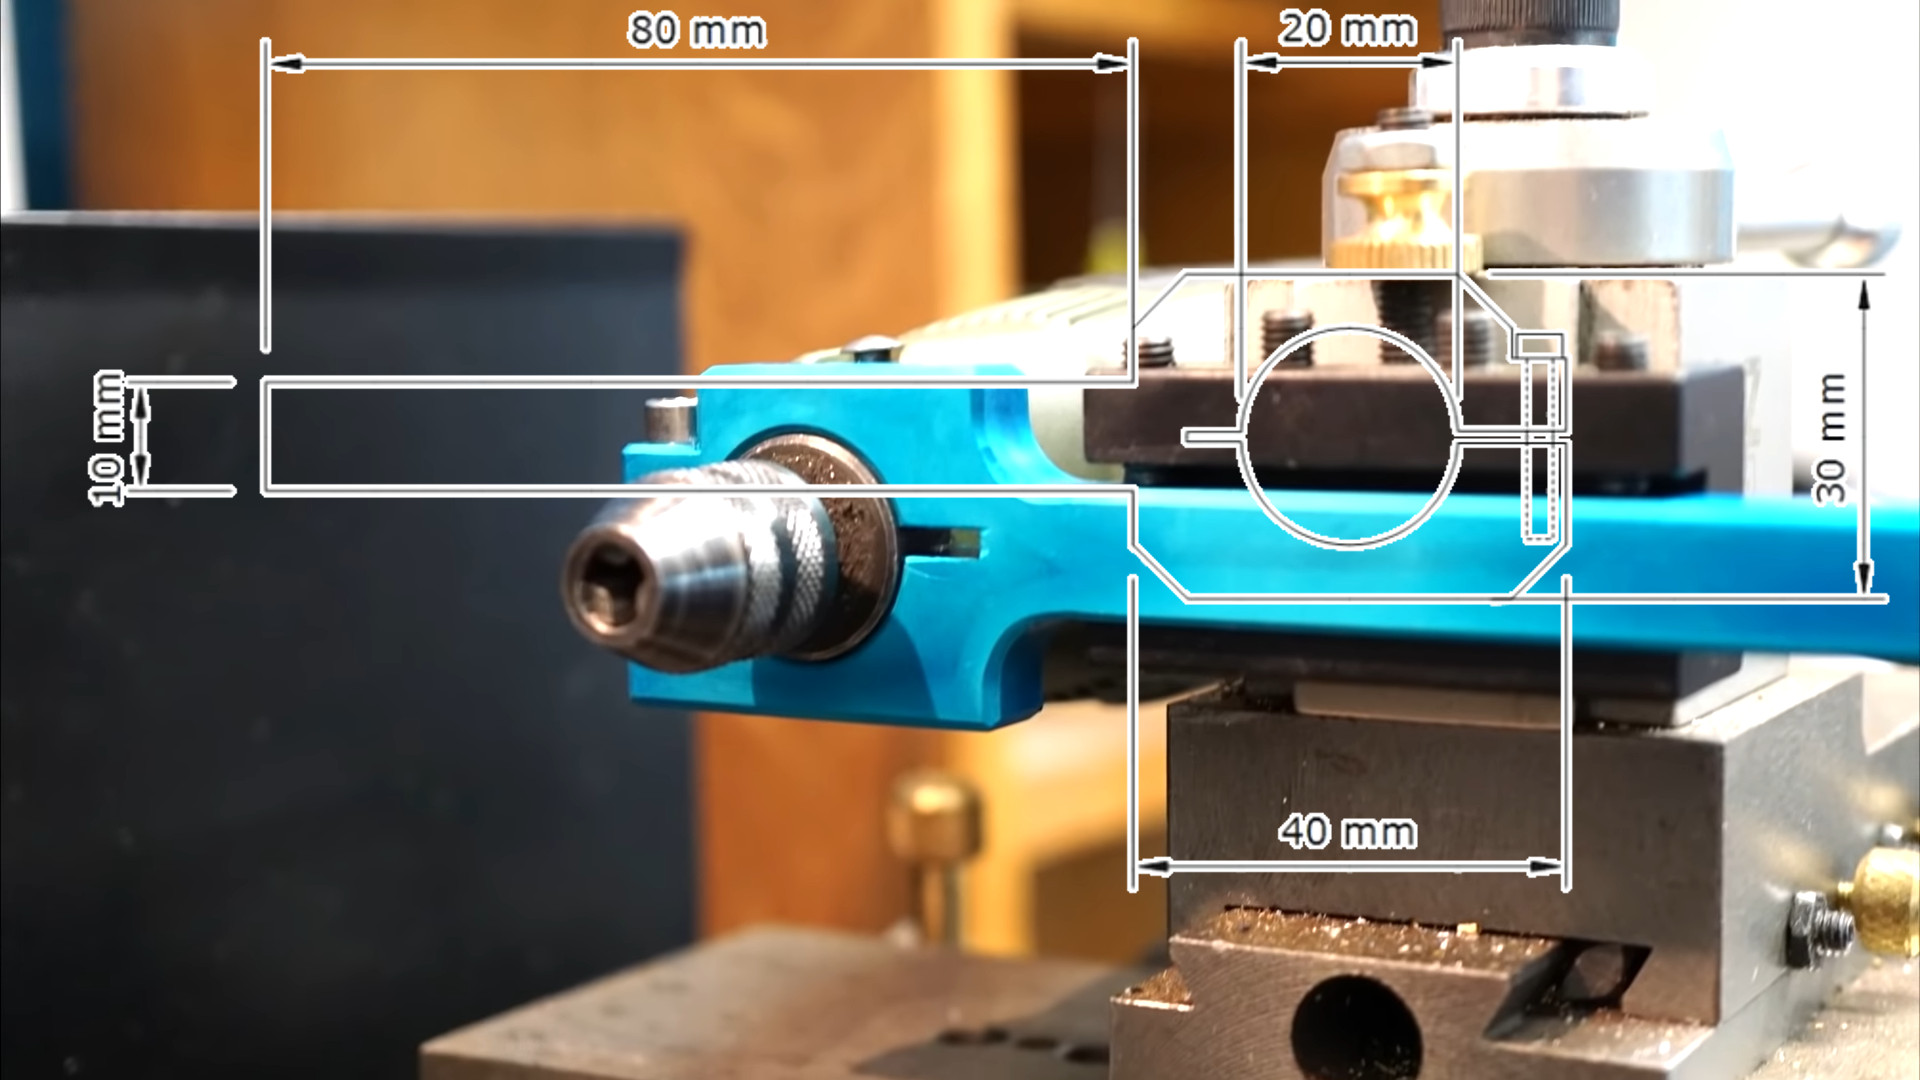 Lathe's Tool Holder Holds a Rotary Tool